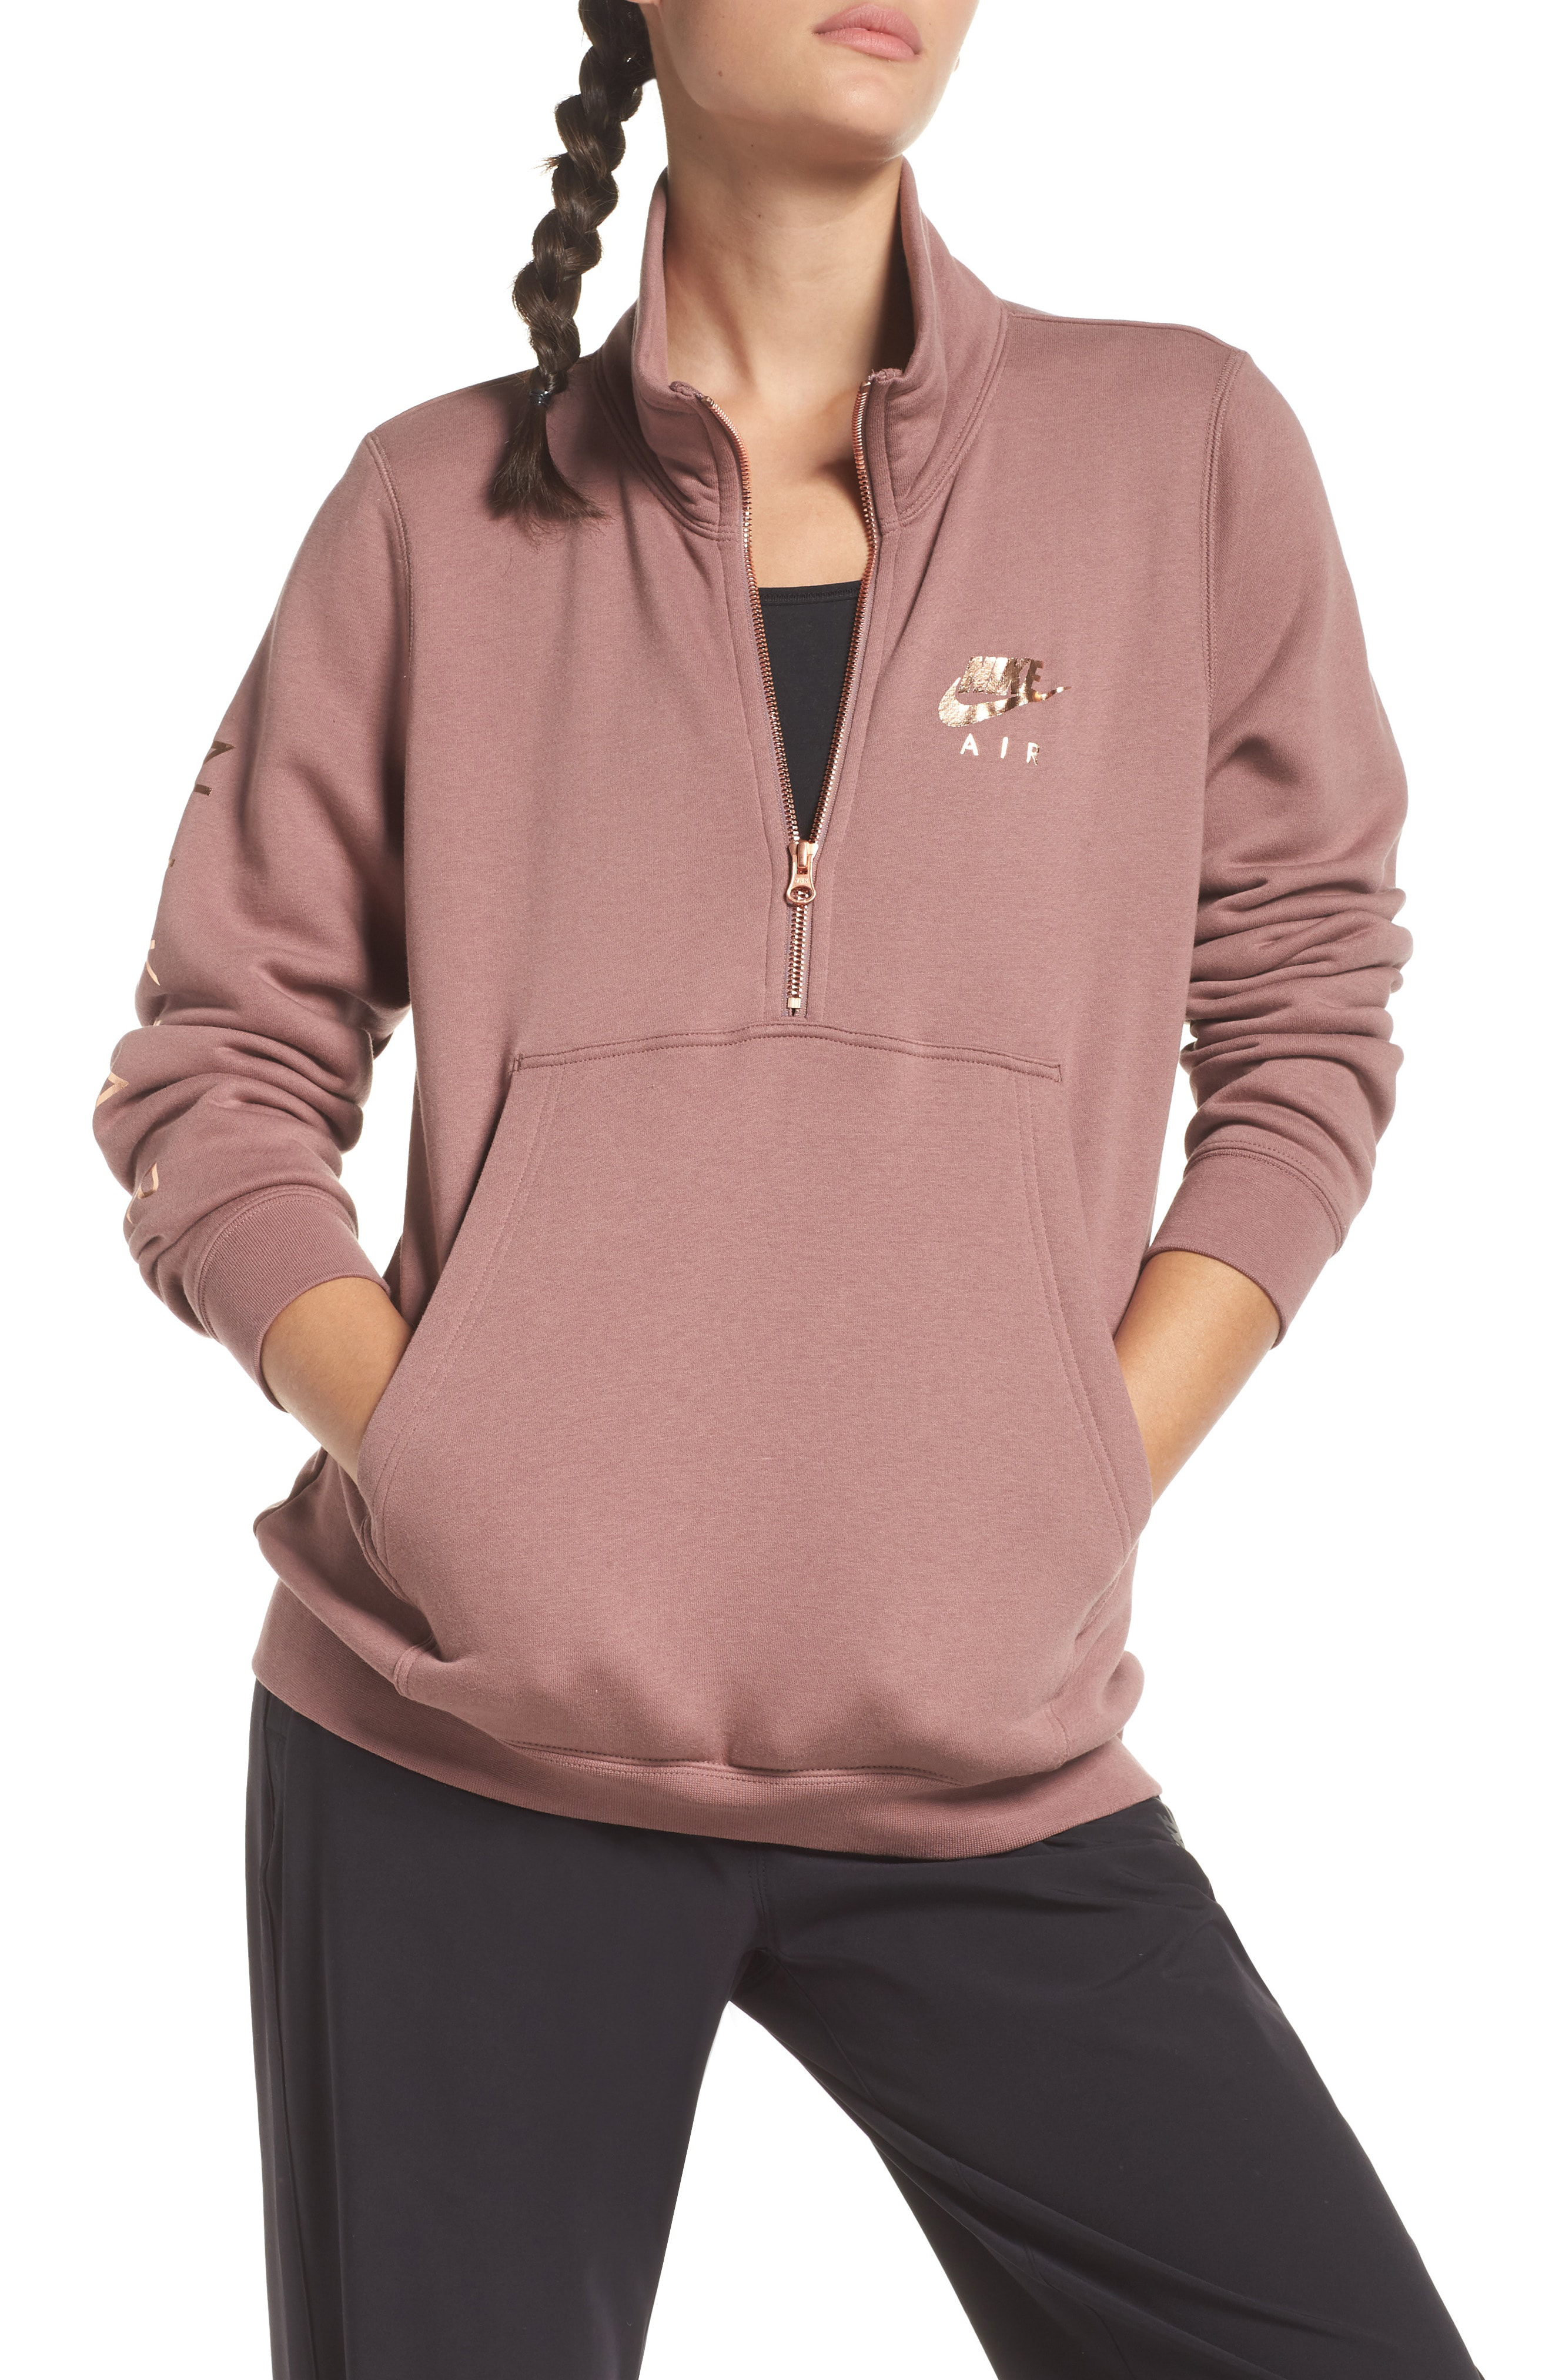 nike air sweatshirt mauve